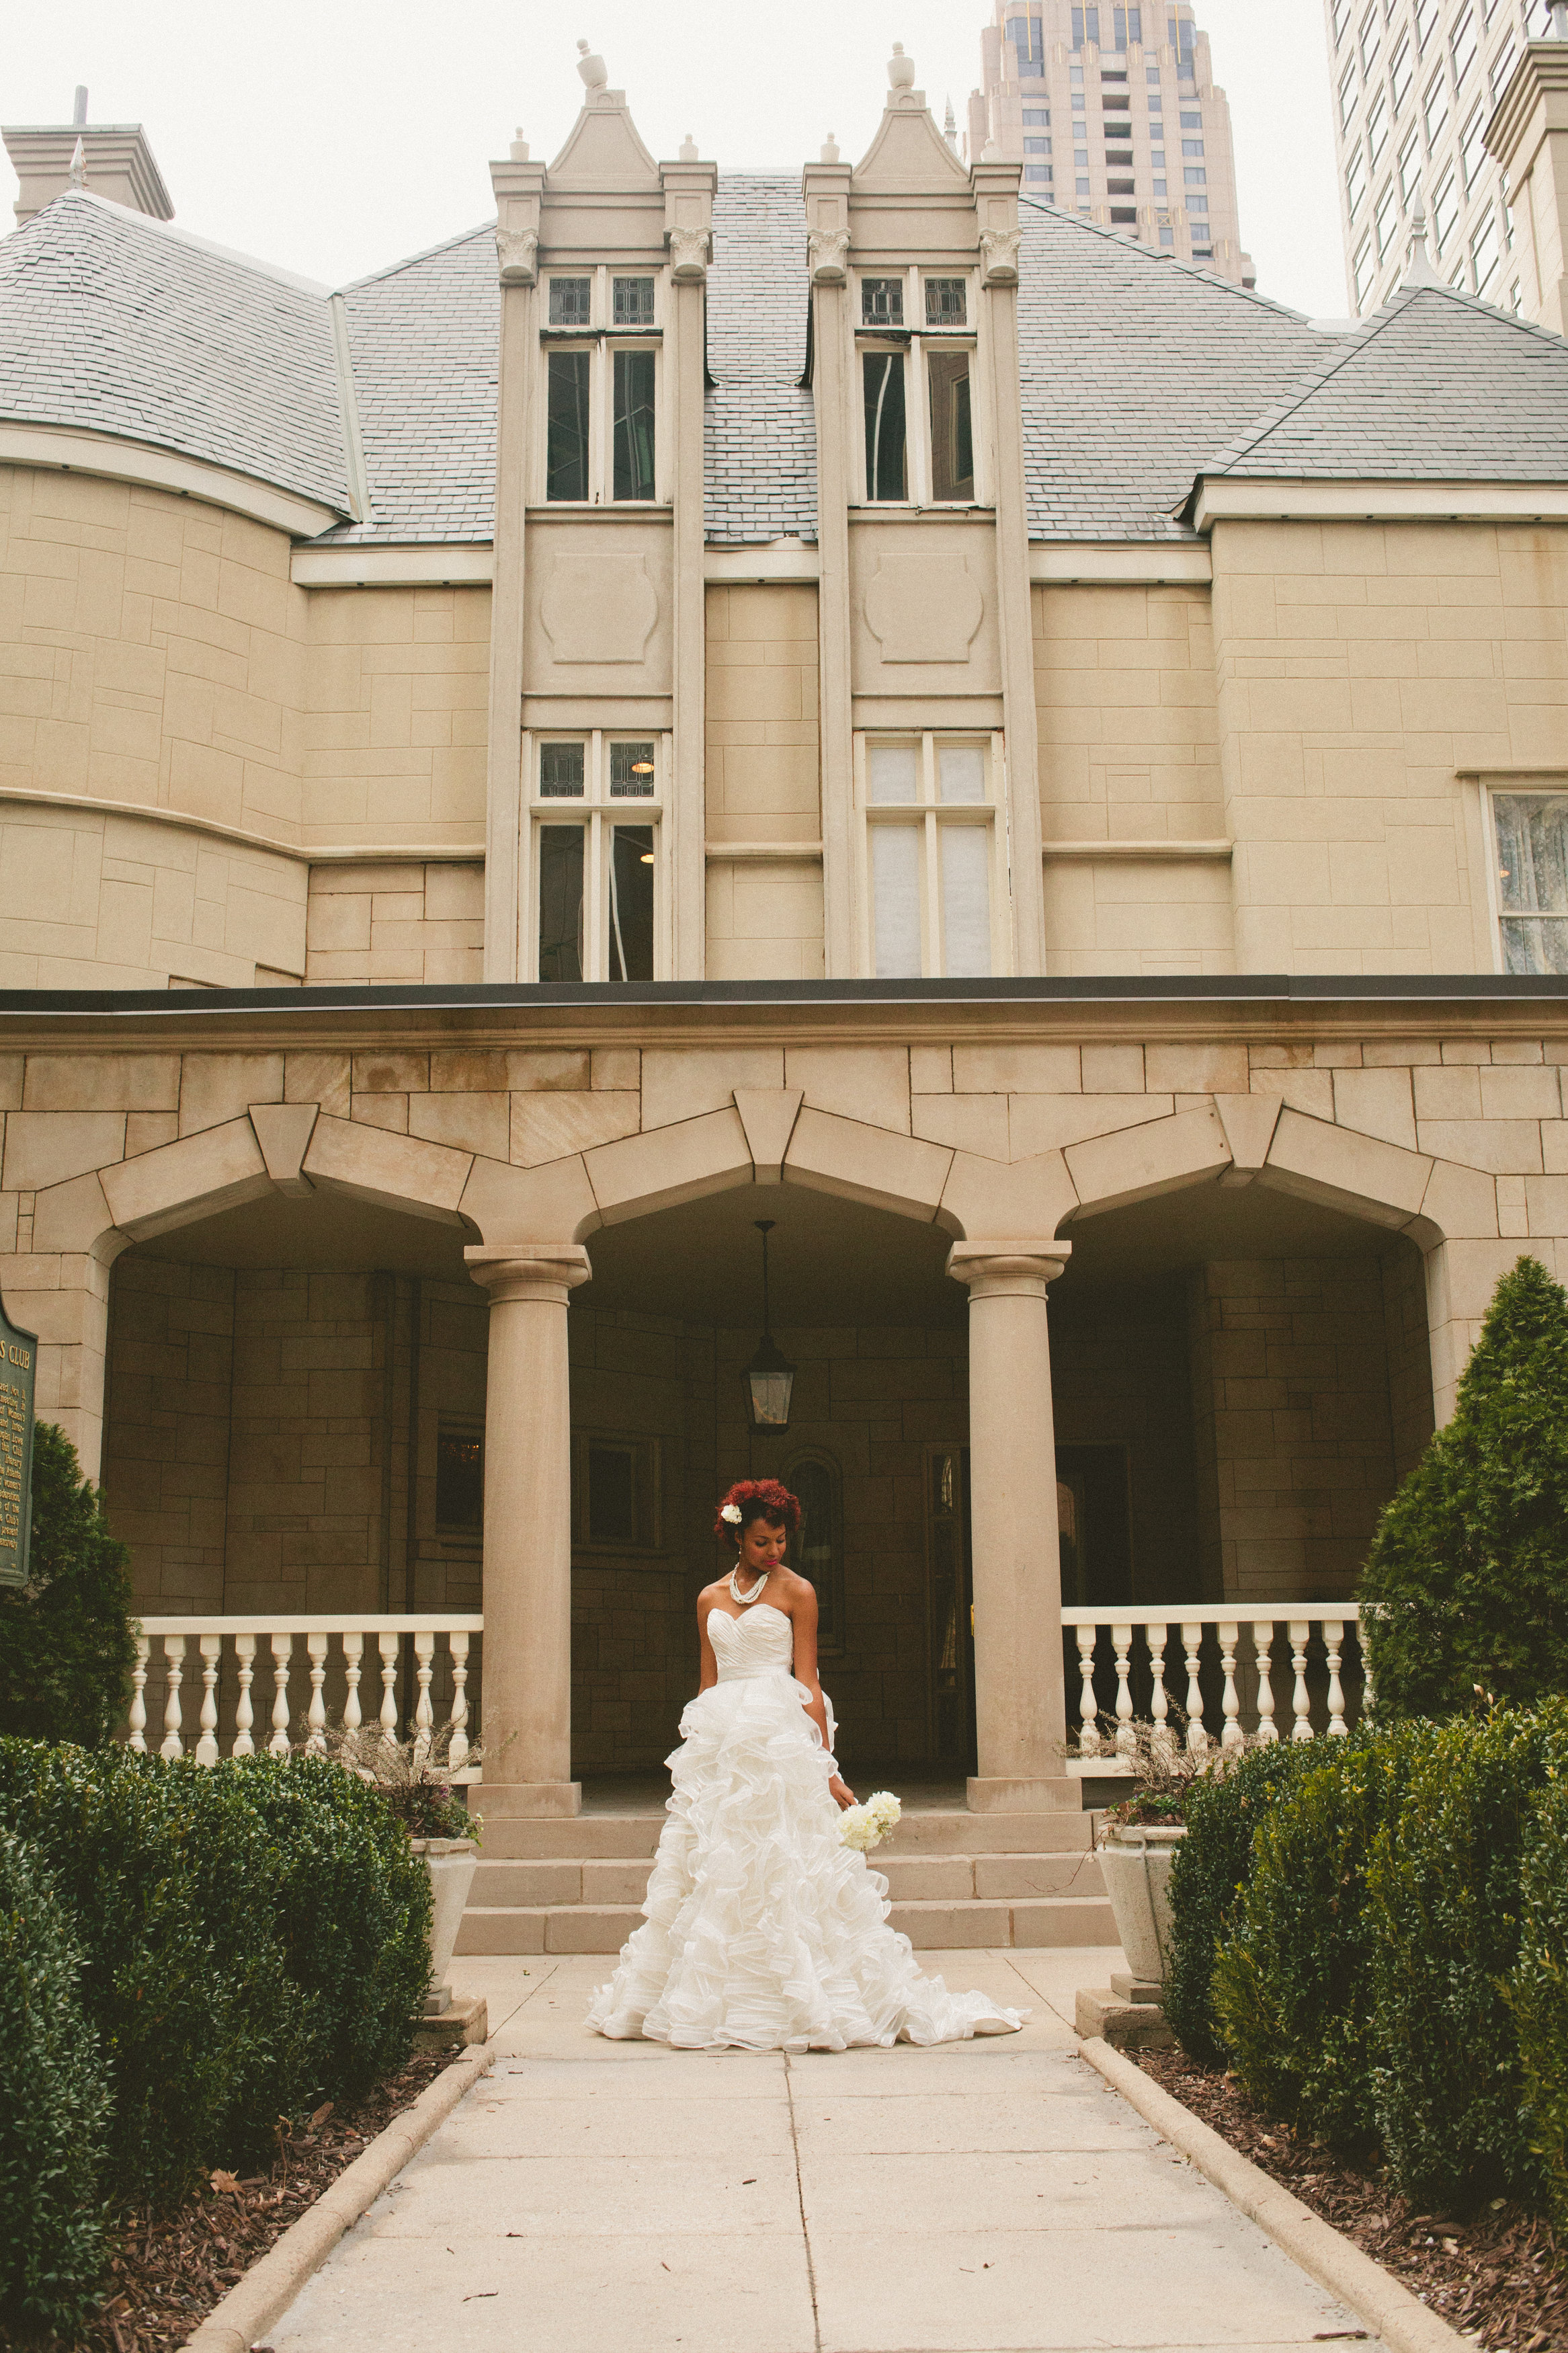 The Wimbish House: Image Courtesy of  Bri McDaniel Photography